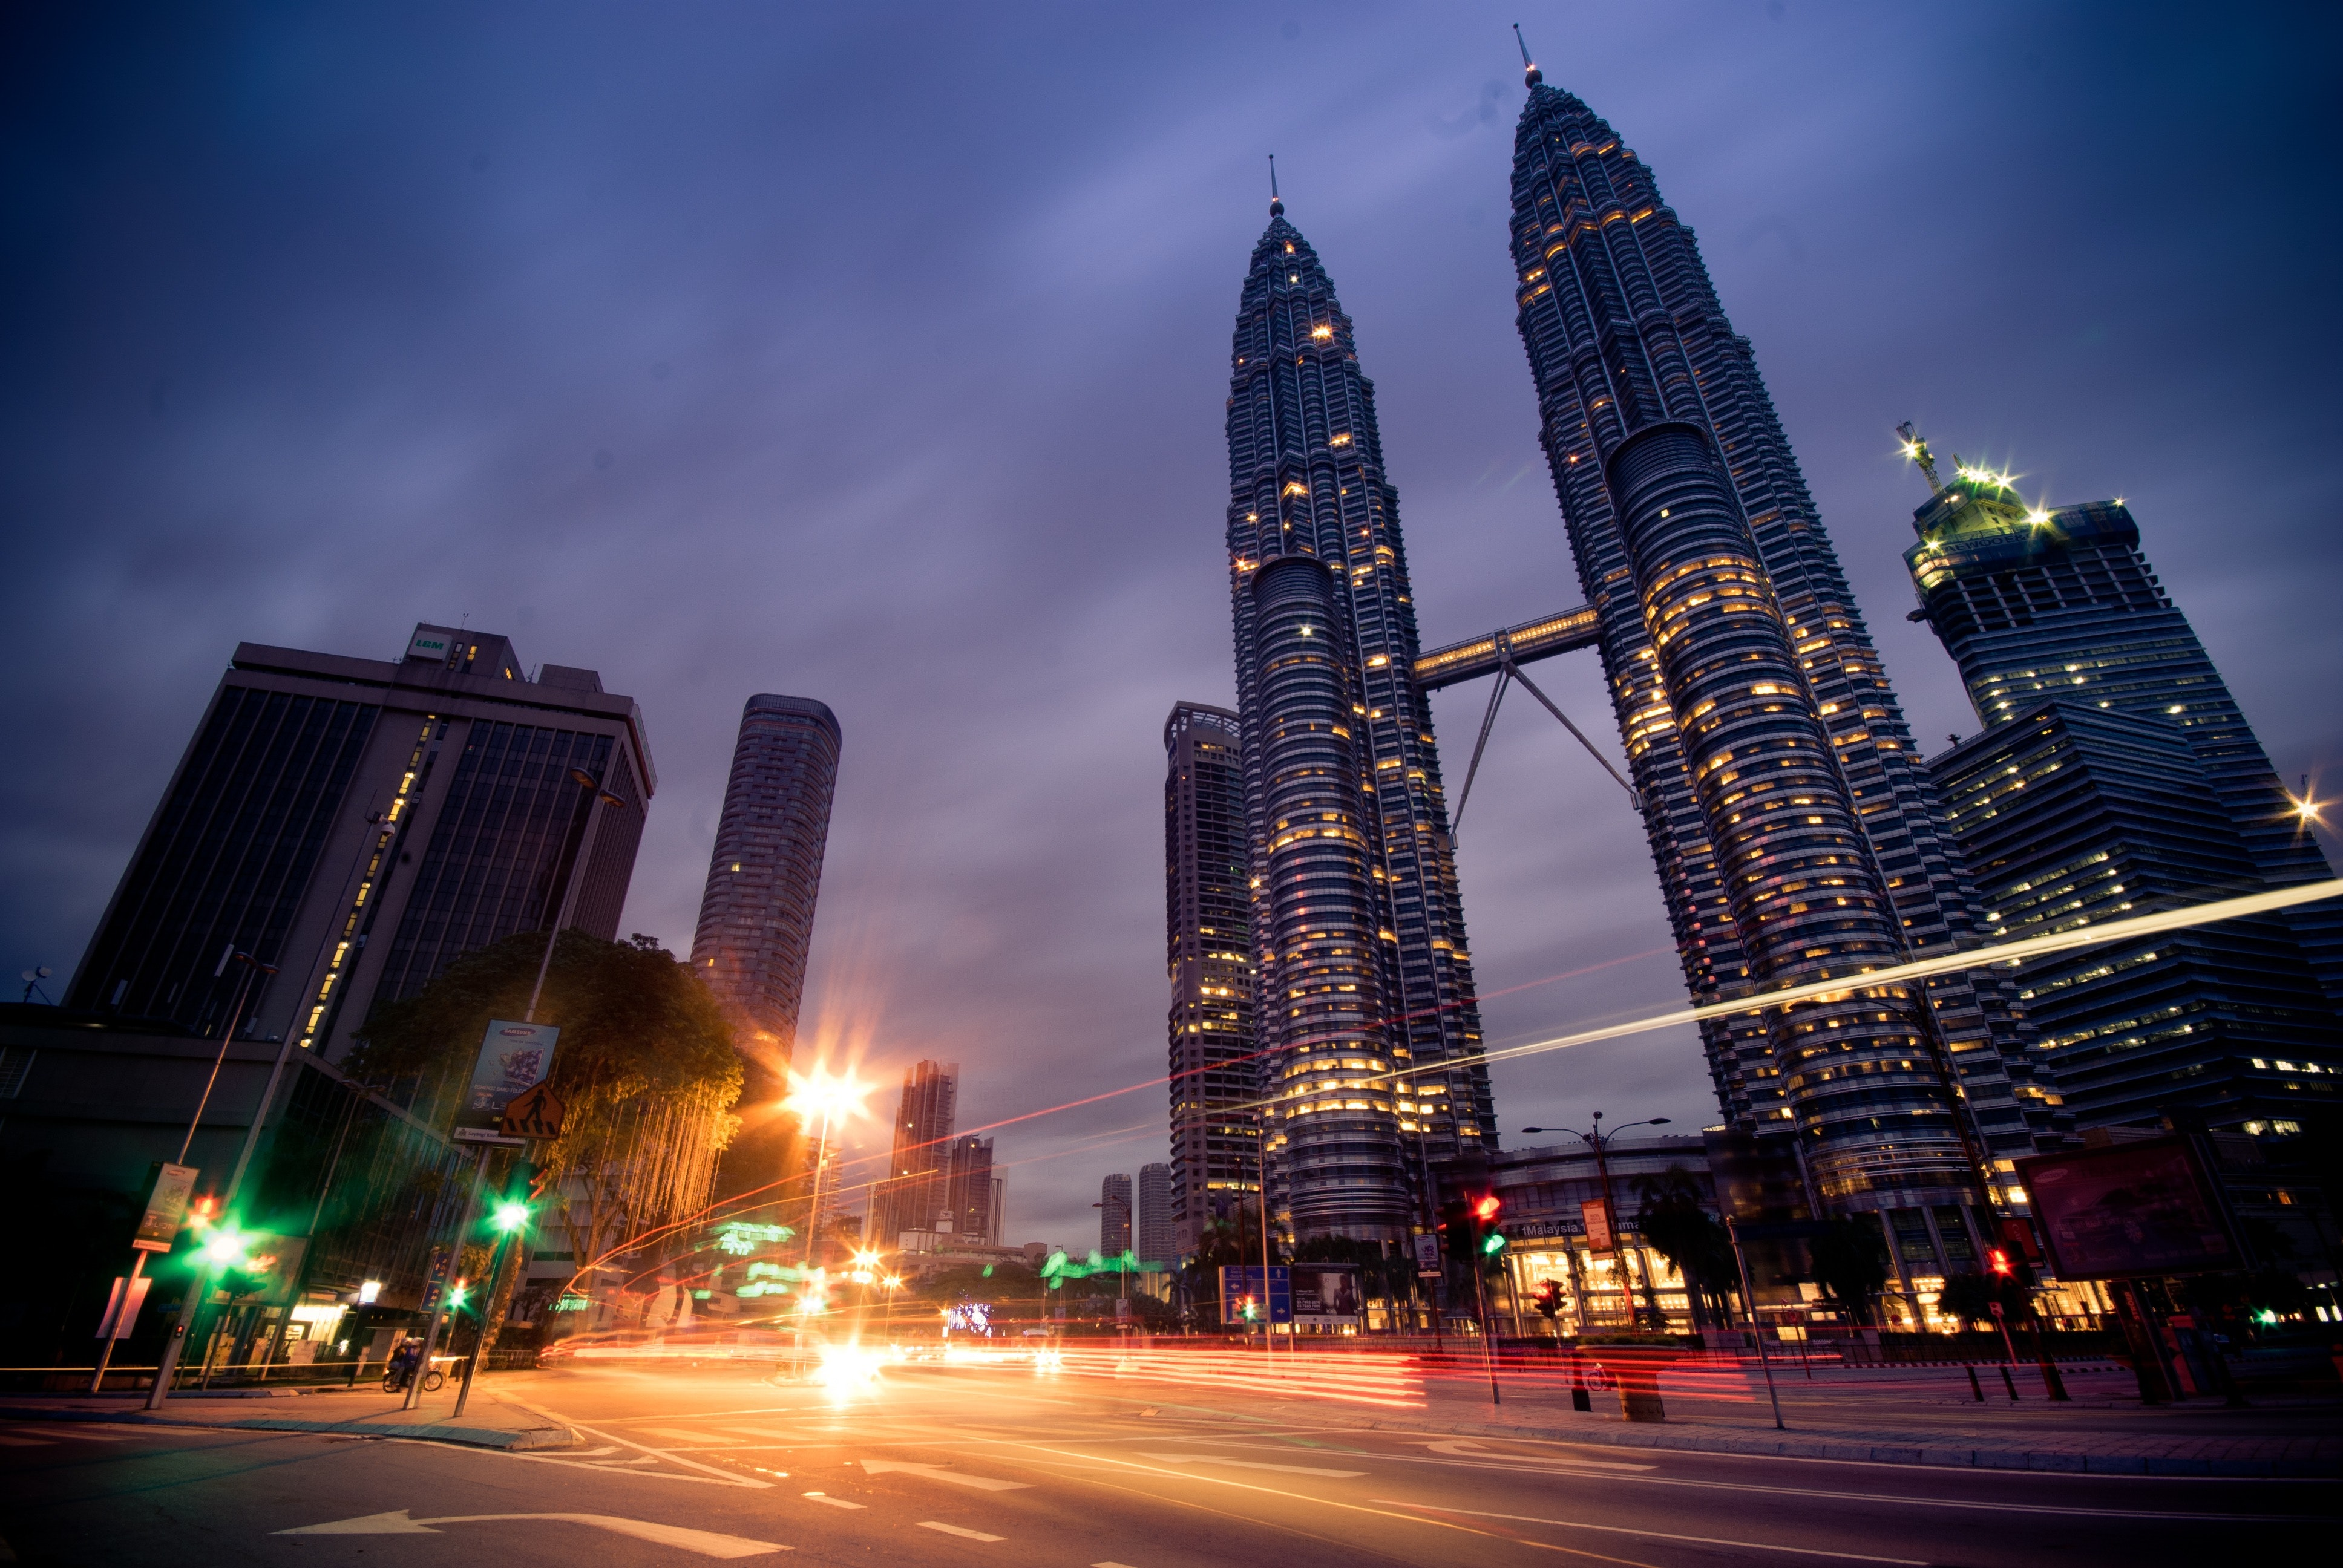 the best guide for exploring Malaysia